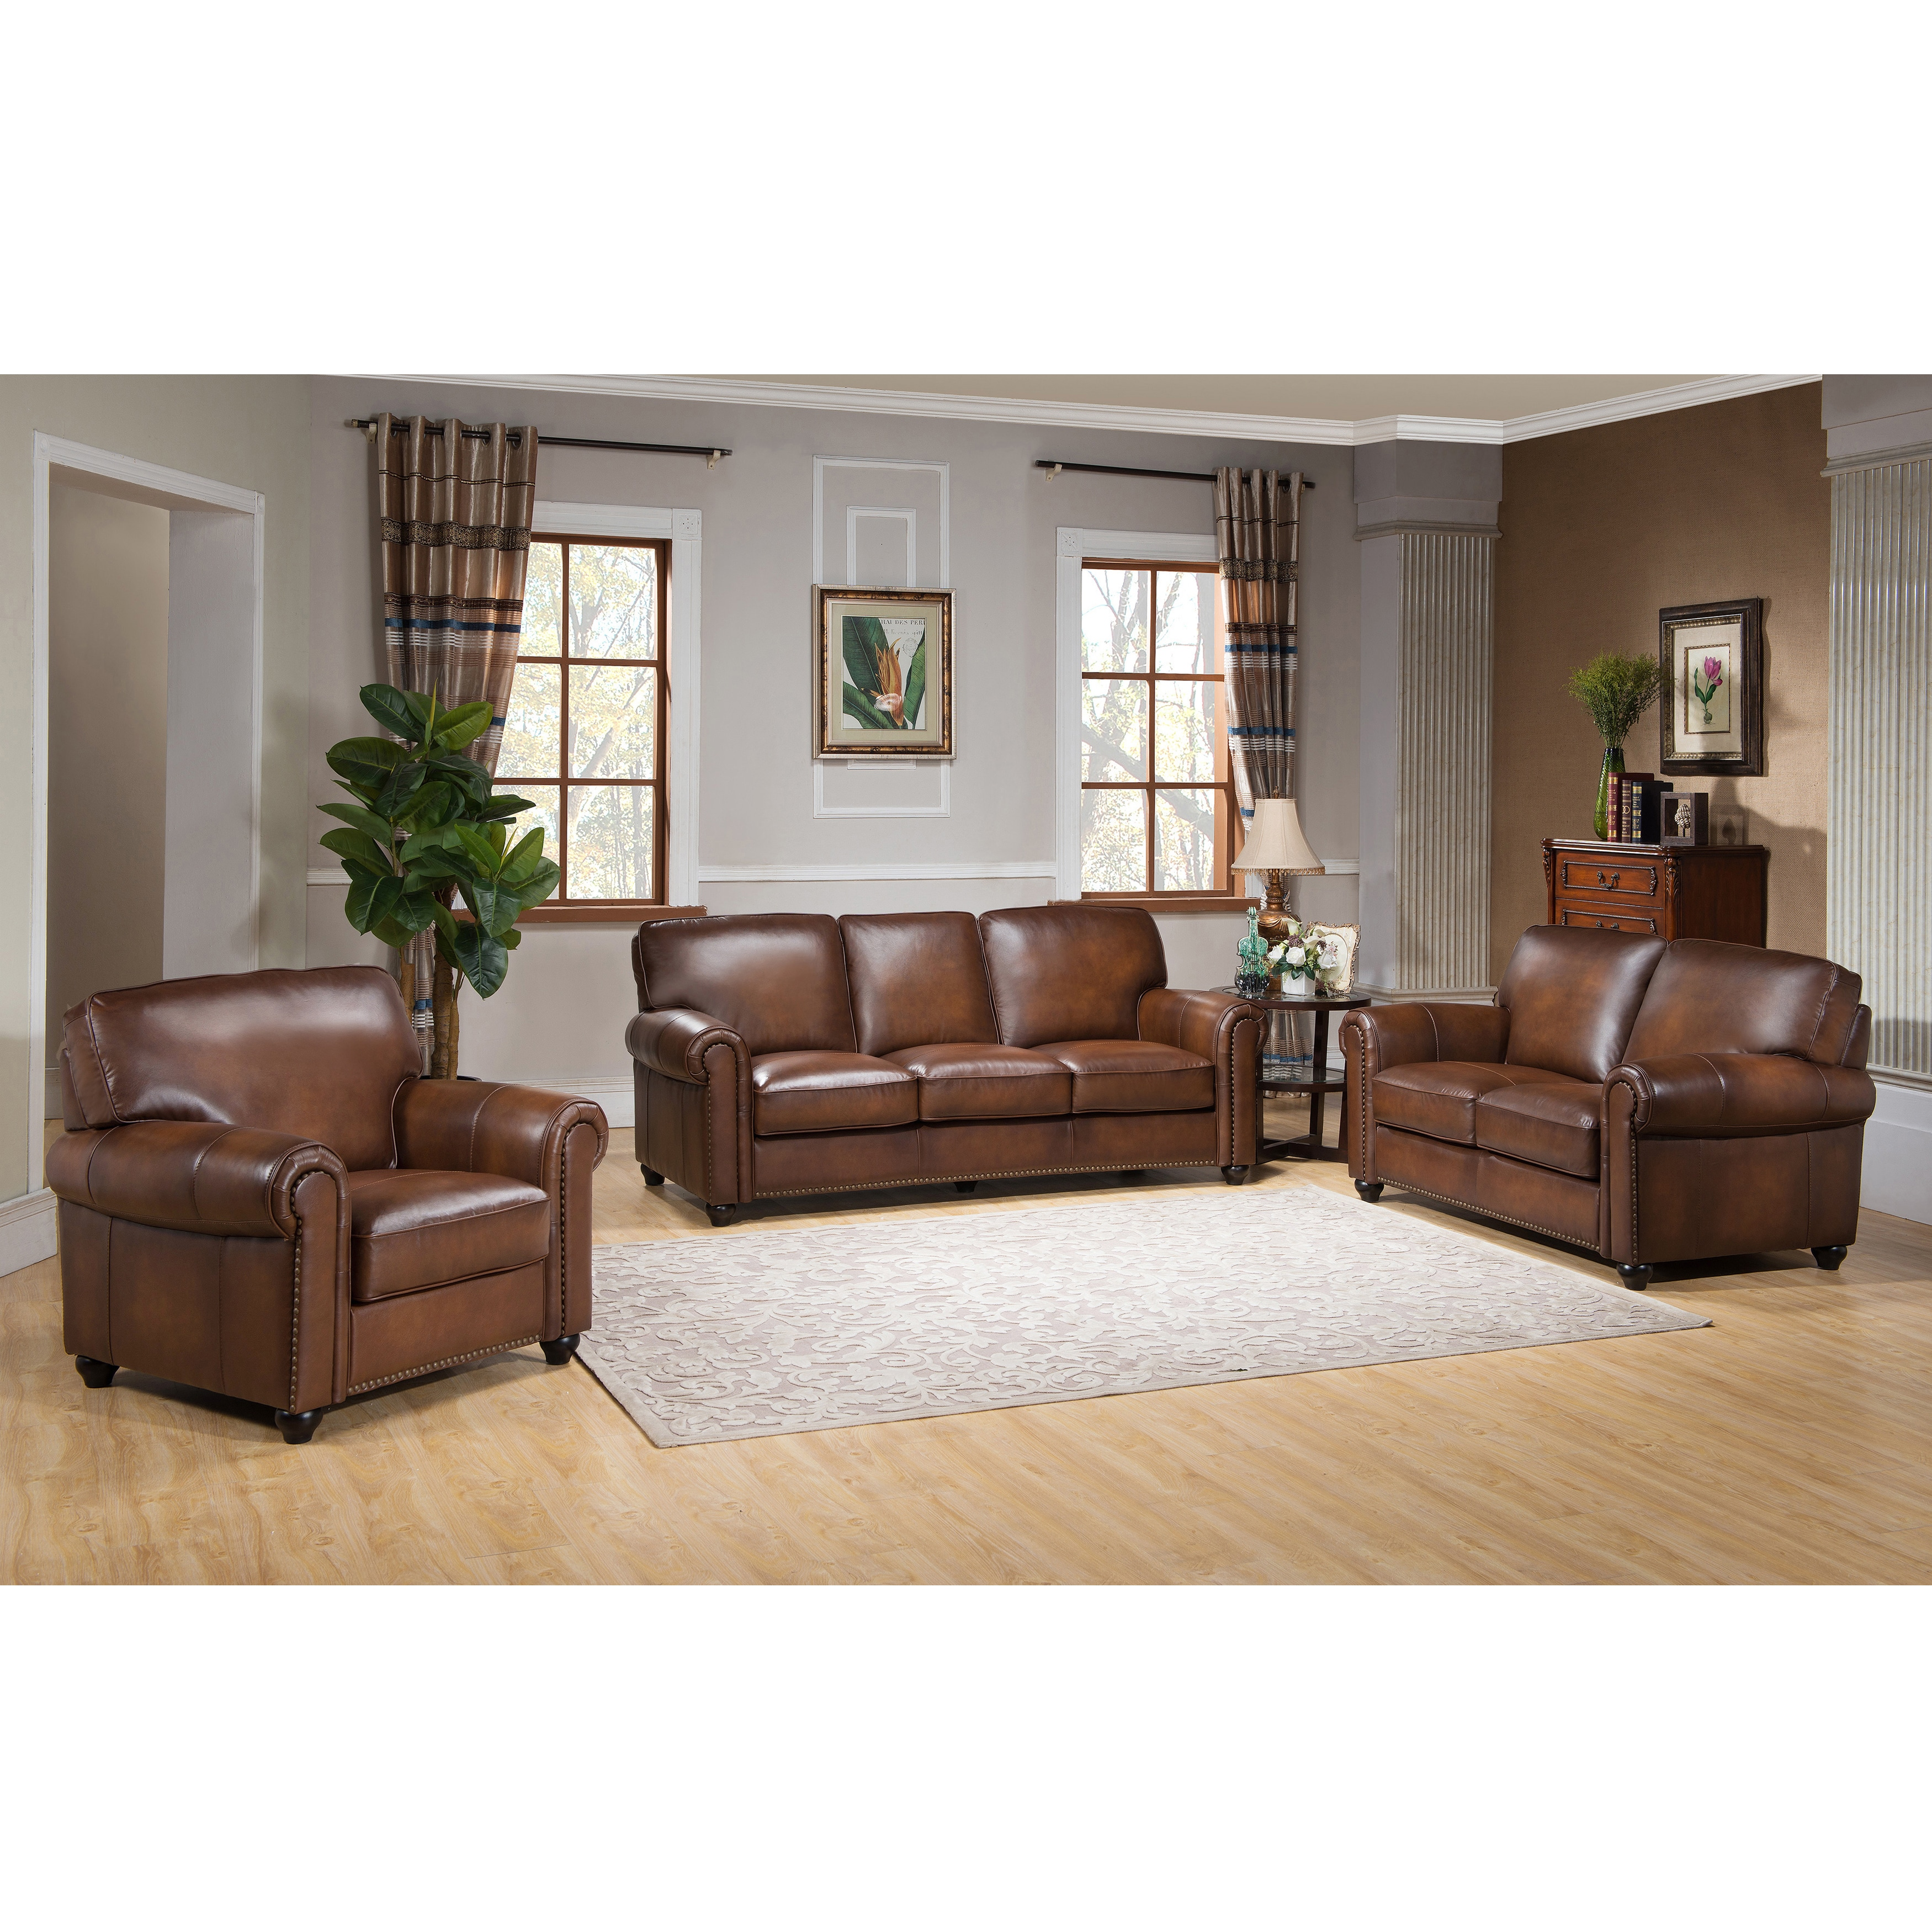 80 Leather Sofa Unique 80 Inch Couch And Leather Sofa Bed